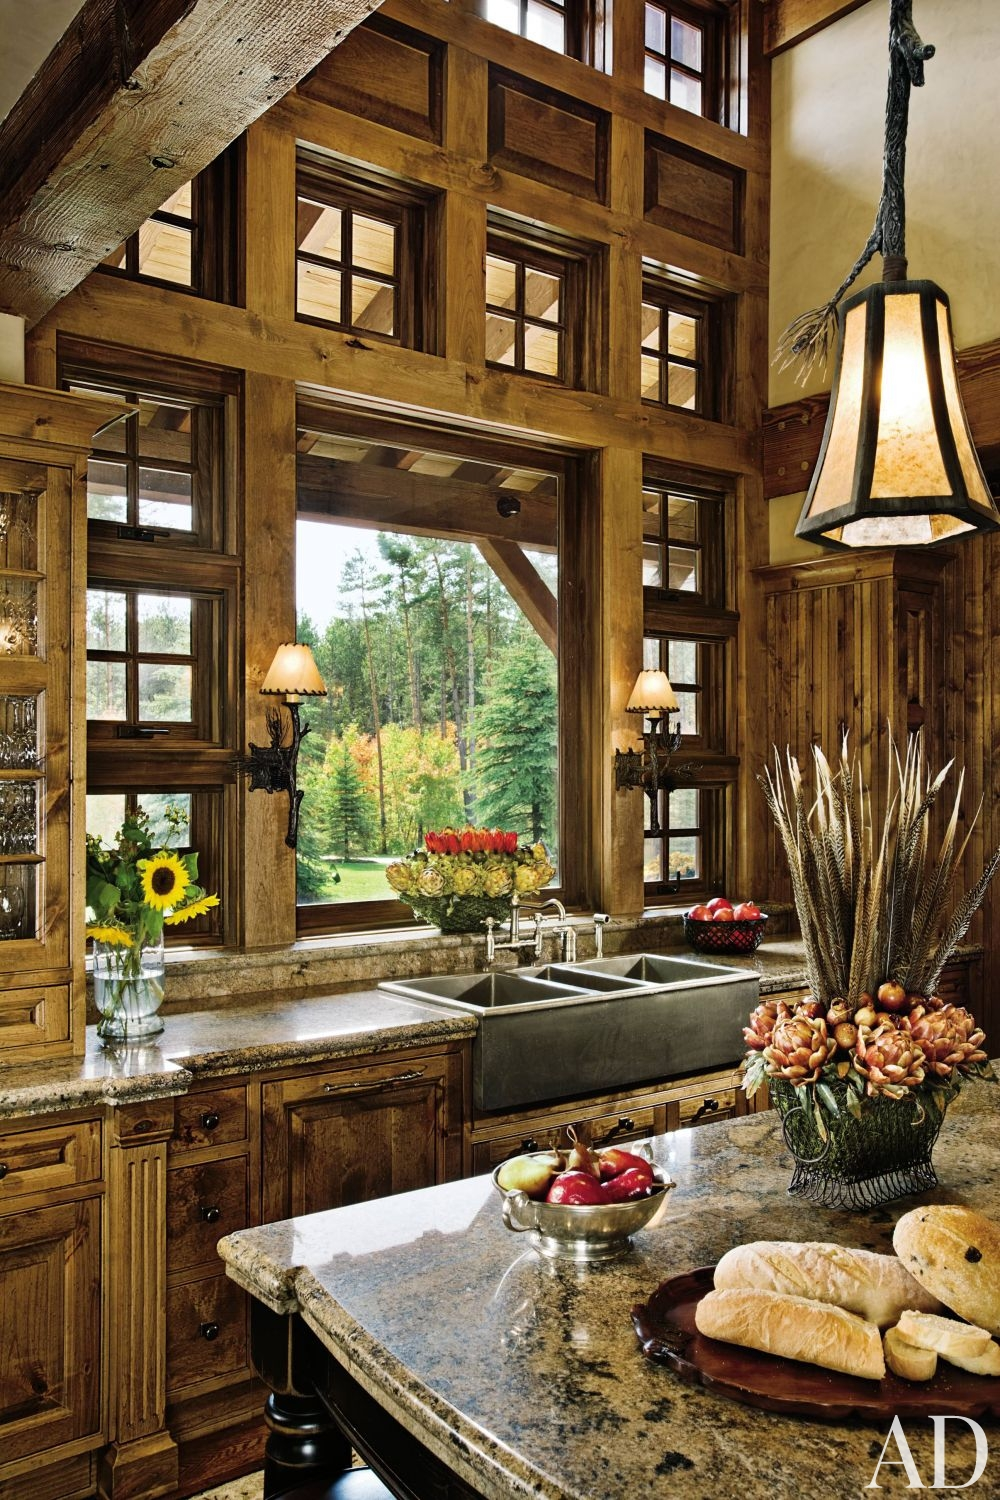 Interior Decorating Kitchen: Bring In The Outdoors With These Simple